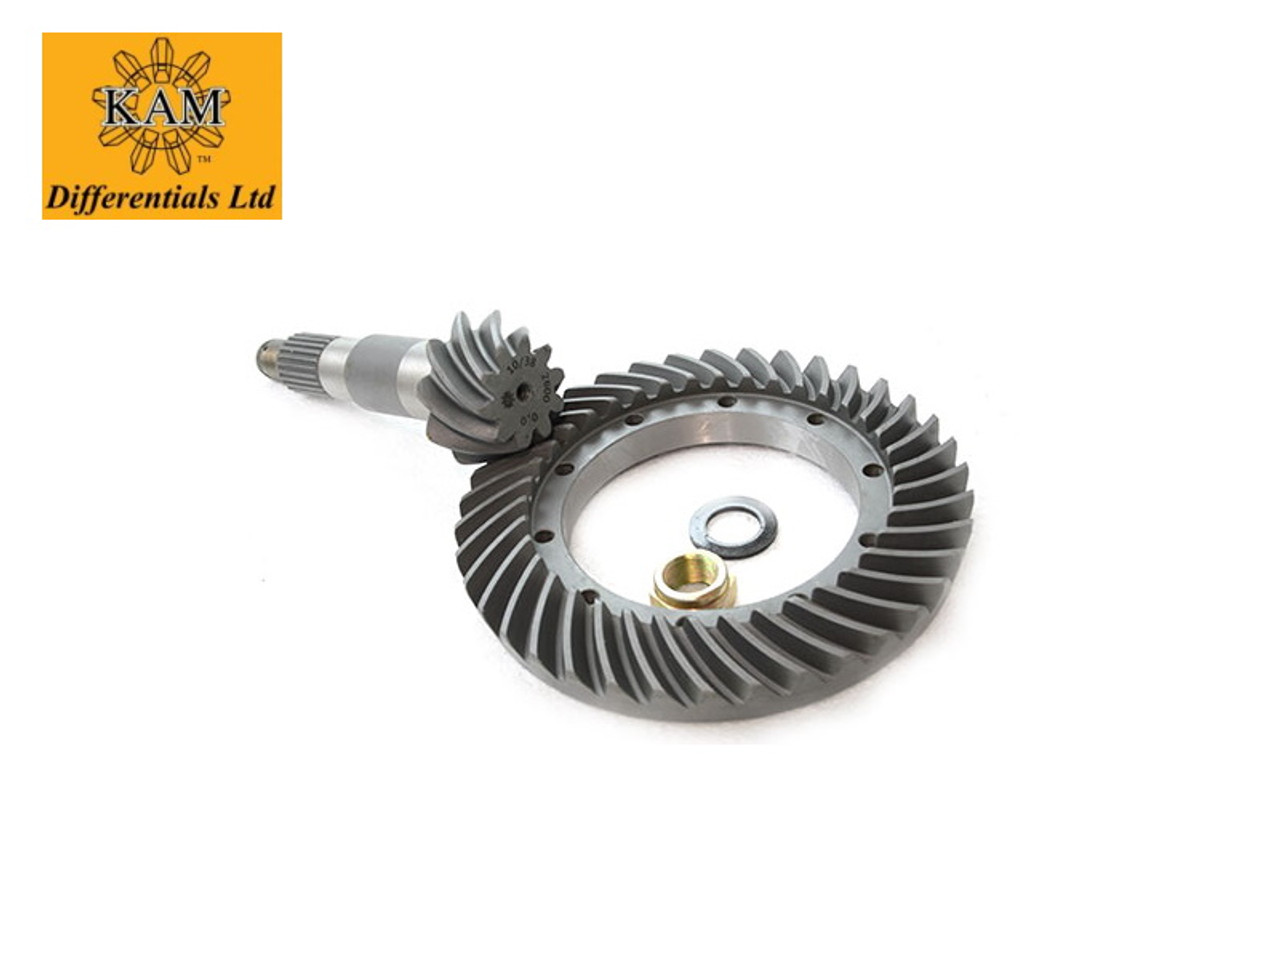 KAM 3.8 CROWN WHEEL&PINION FRONT(LONG NOSE ROVER DIFF)